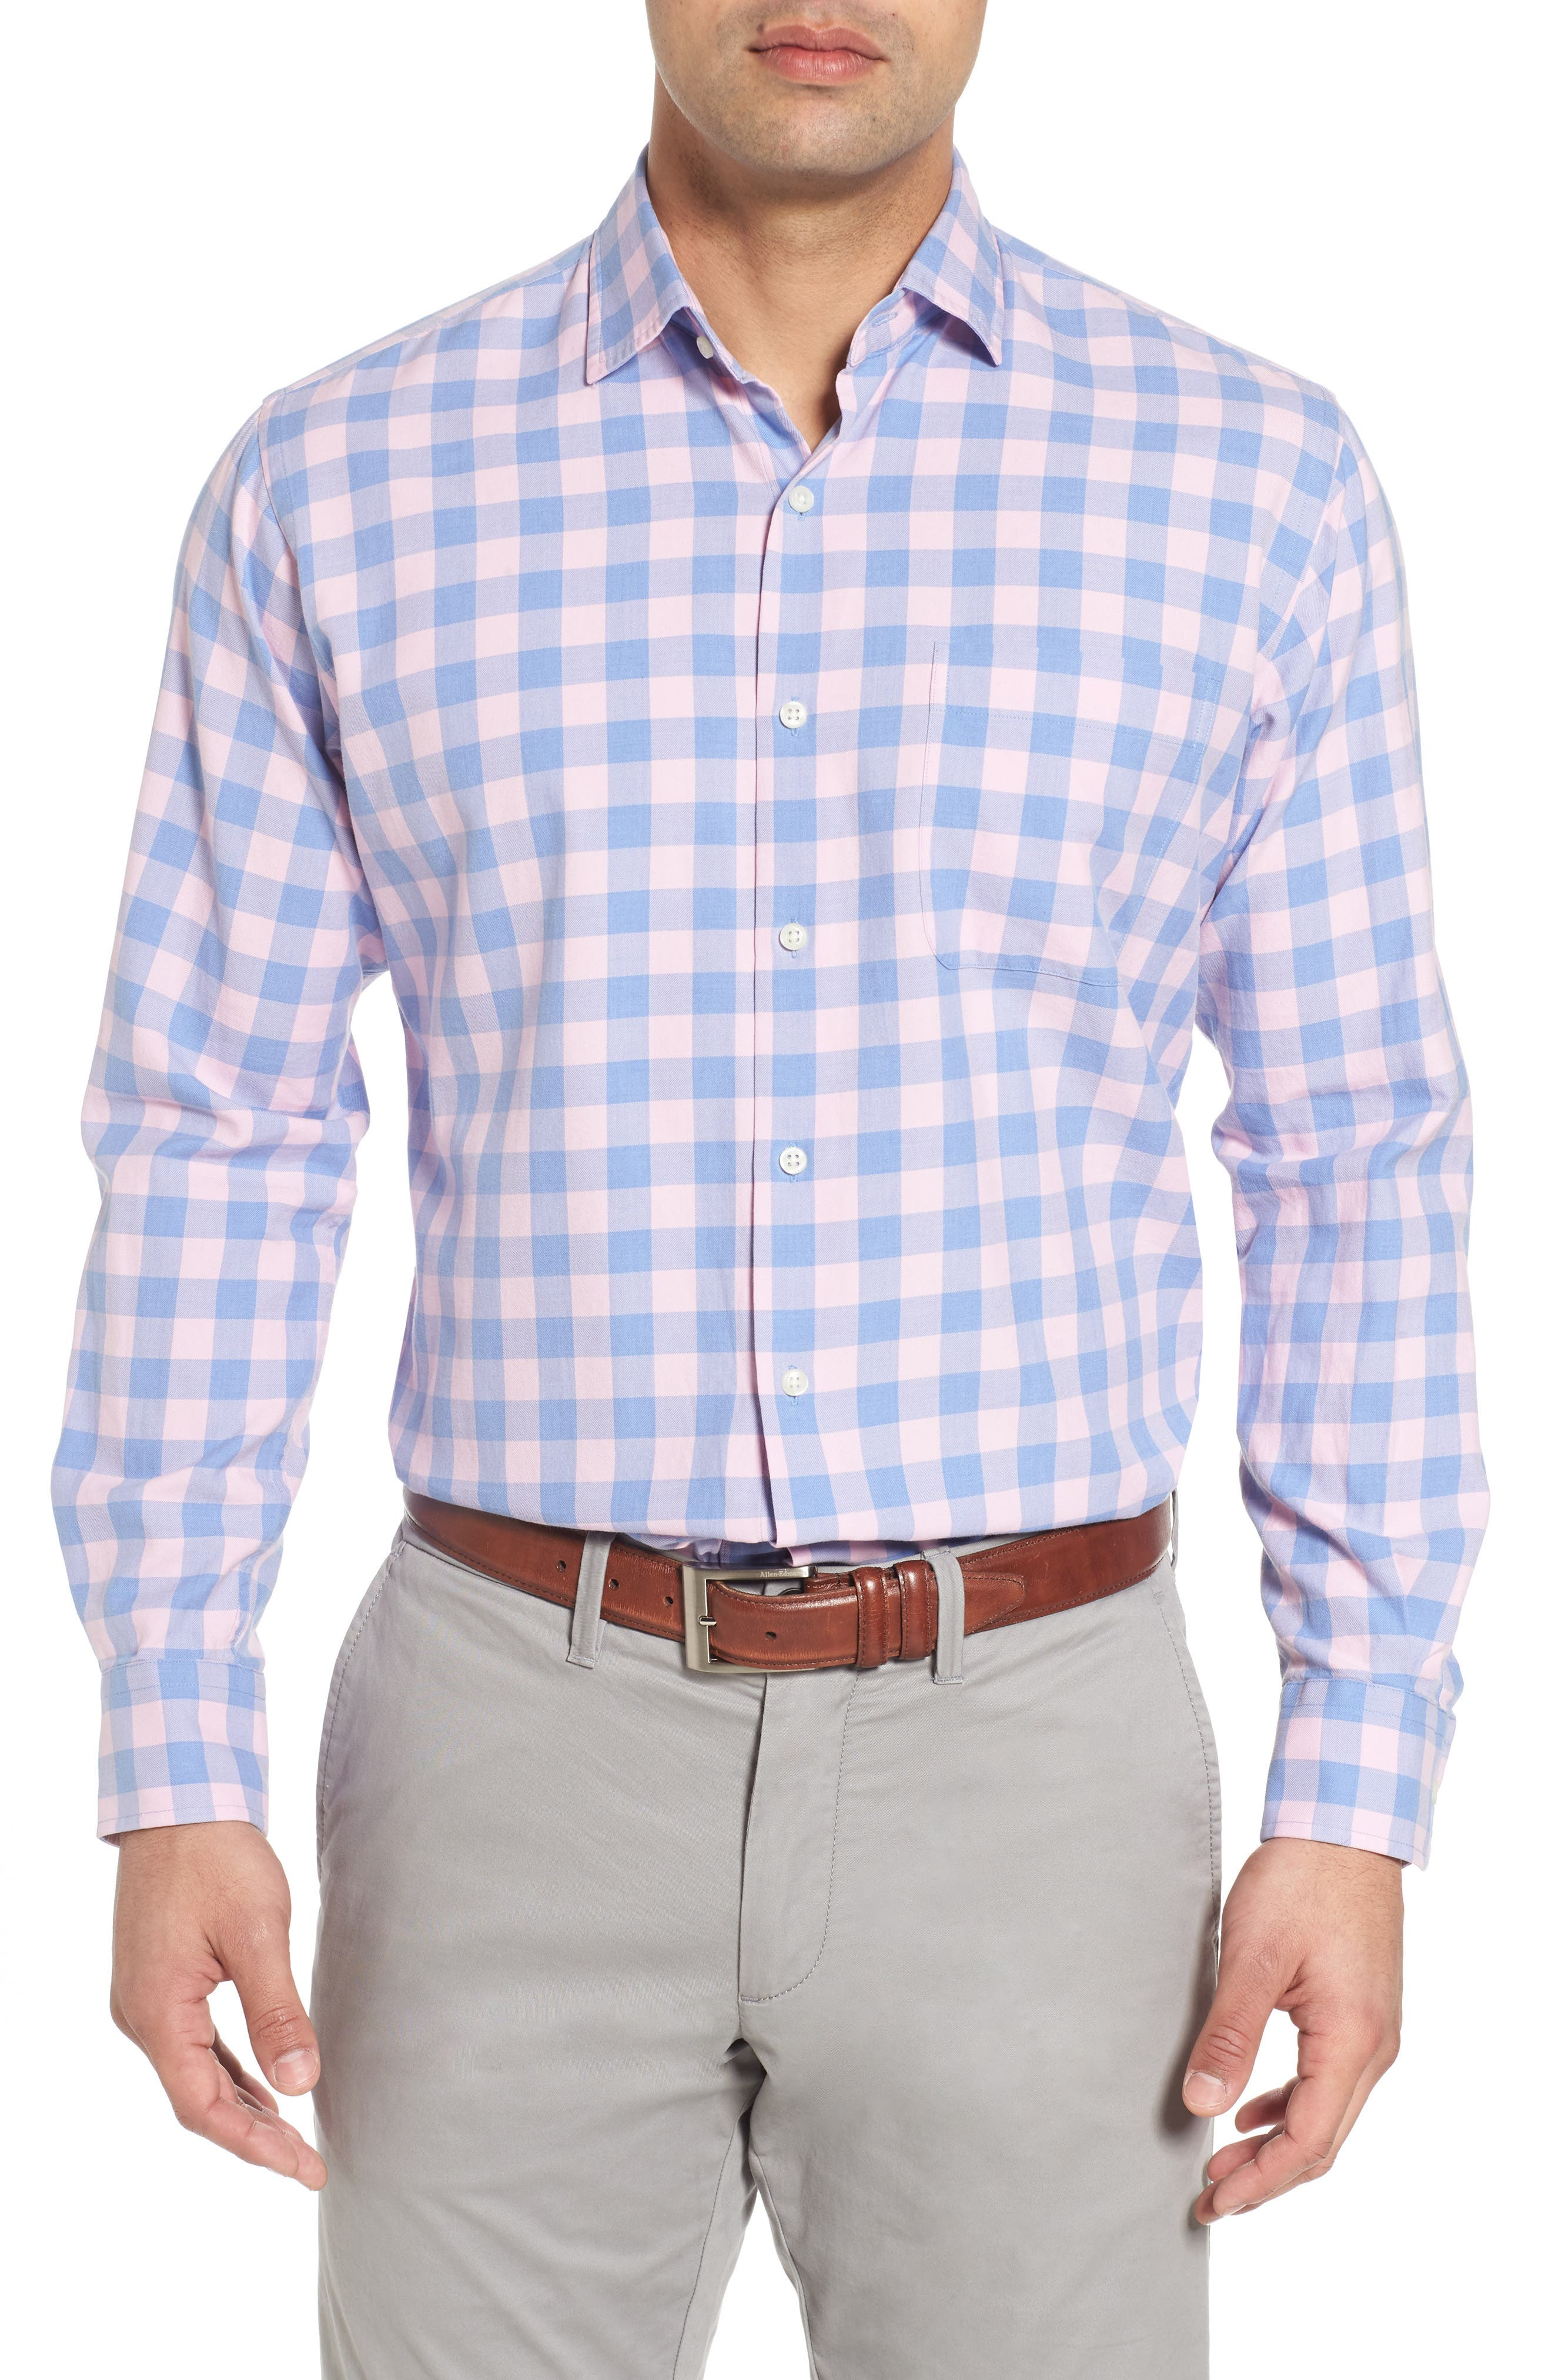 Seaglass Gingham Check Sport Shirt,                         Main,                         color, 407